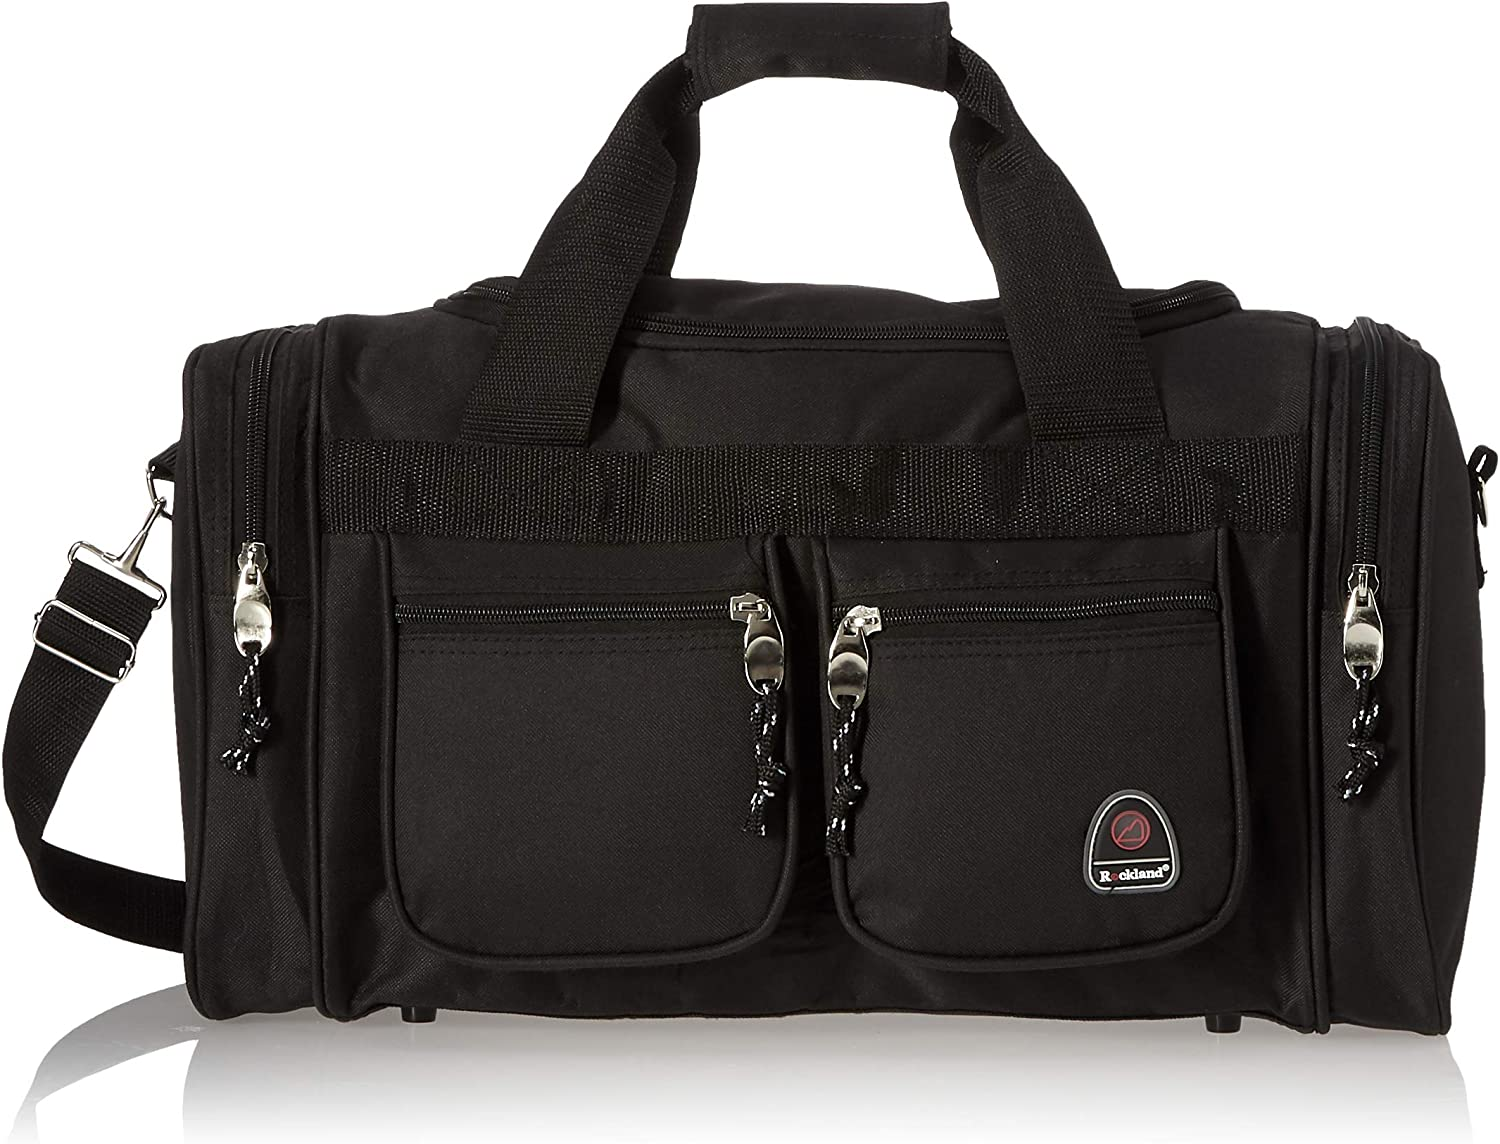 Rockland Luggage 19 Inch Tote Bag, Black, One Size